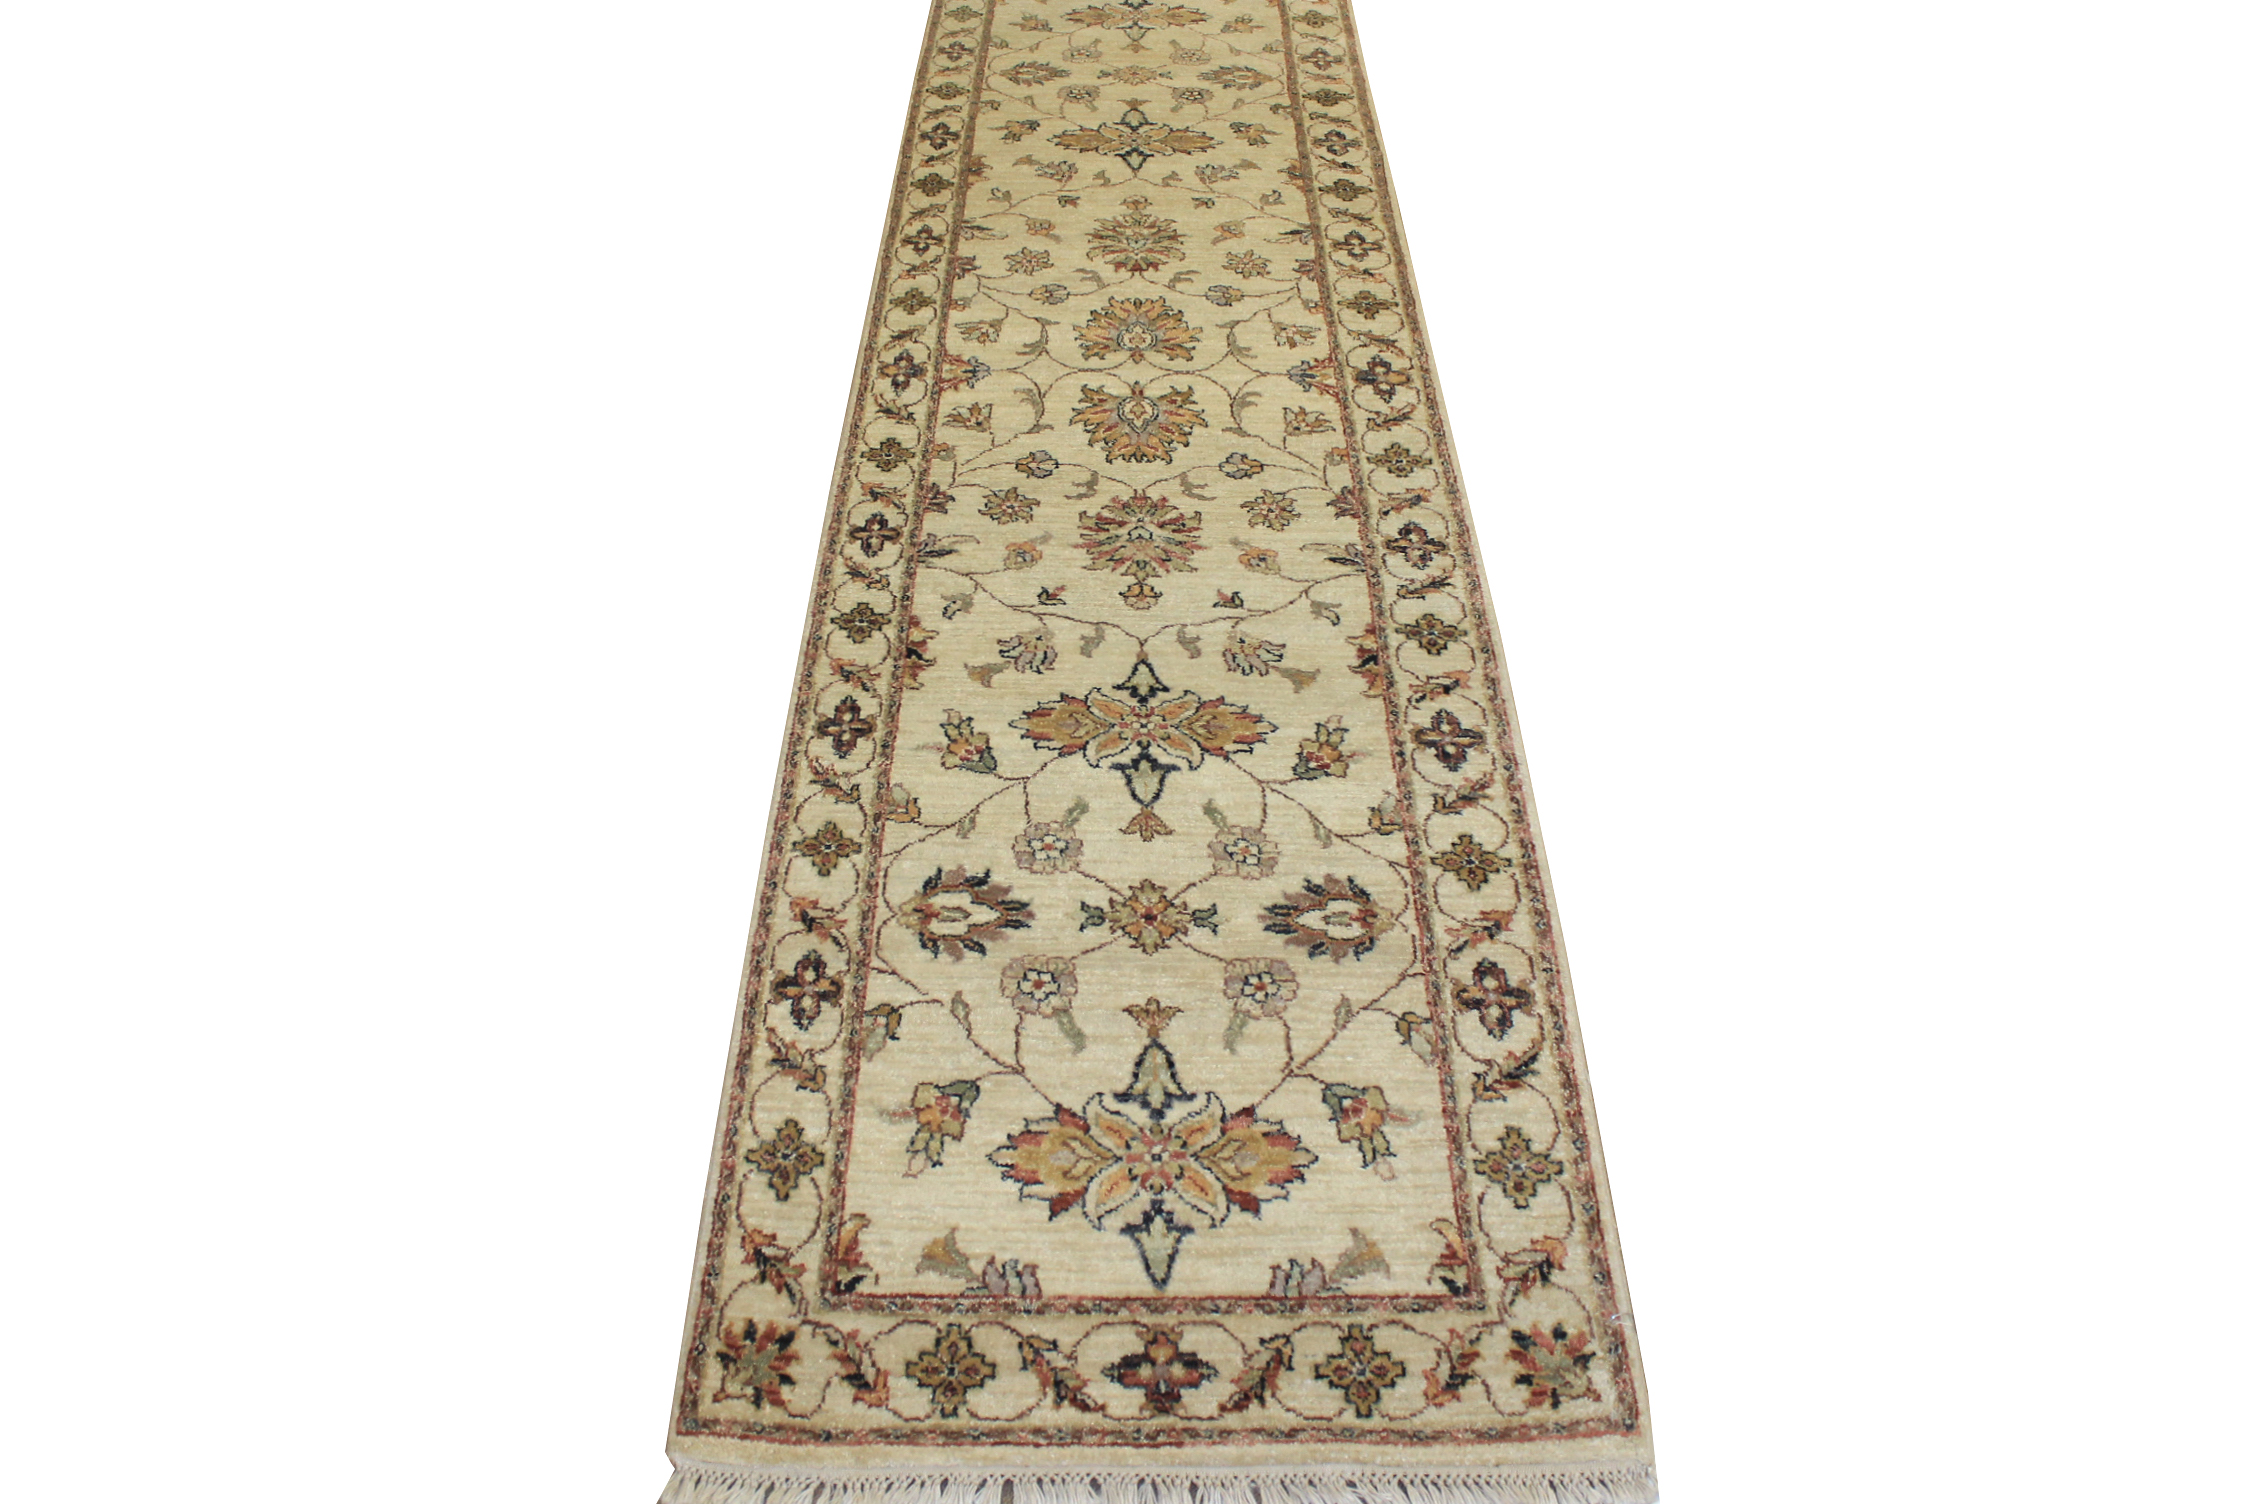 10 ft. Runner Traditional Hand Knotted Wool Area Rug - MR7932